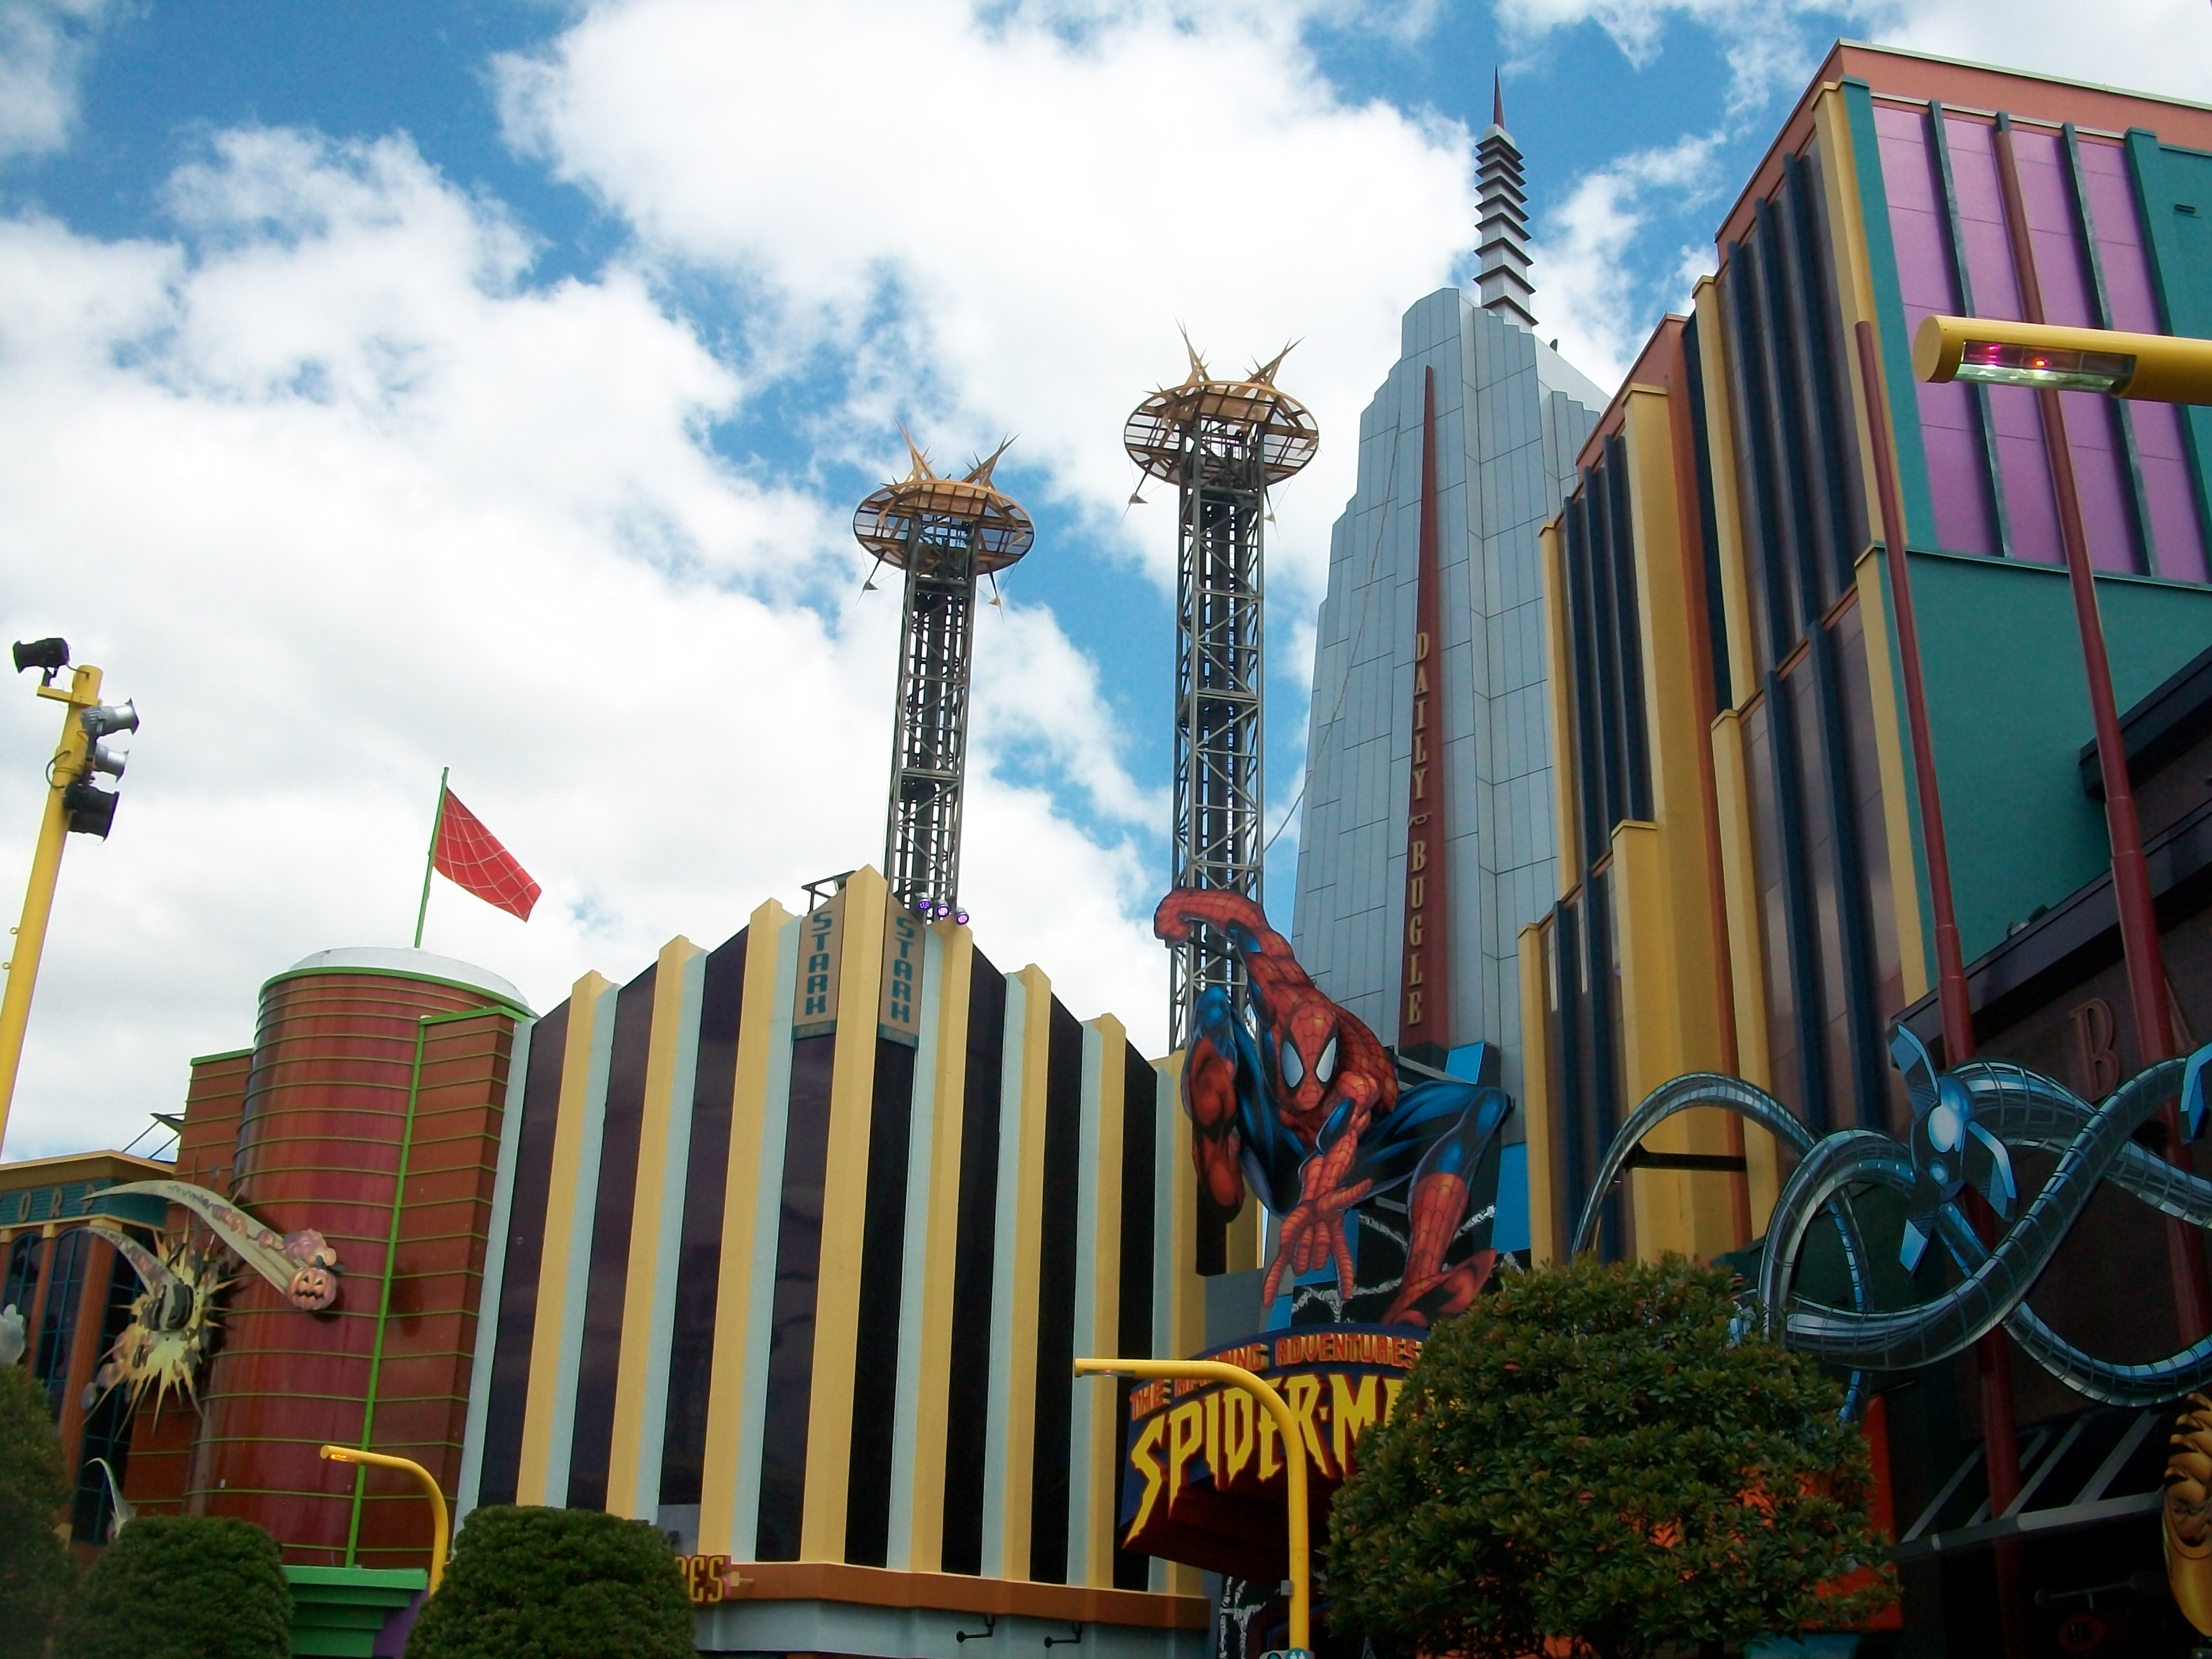 30 photos proving the best decade at Universal Studios Orlando was ...